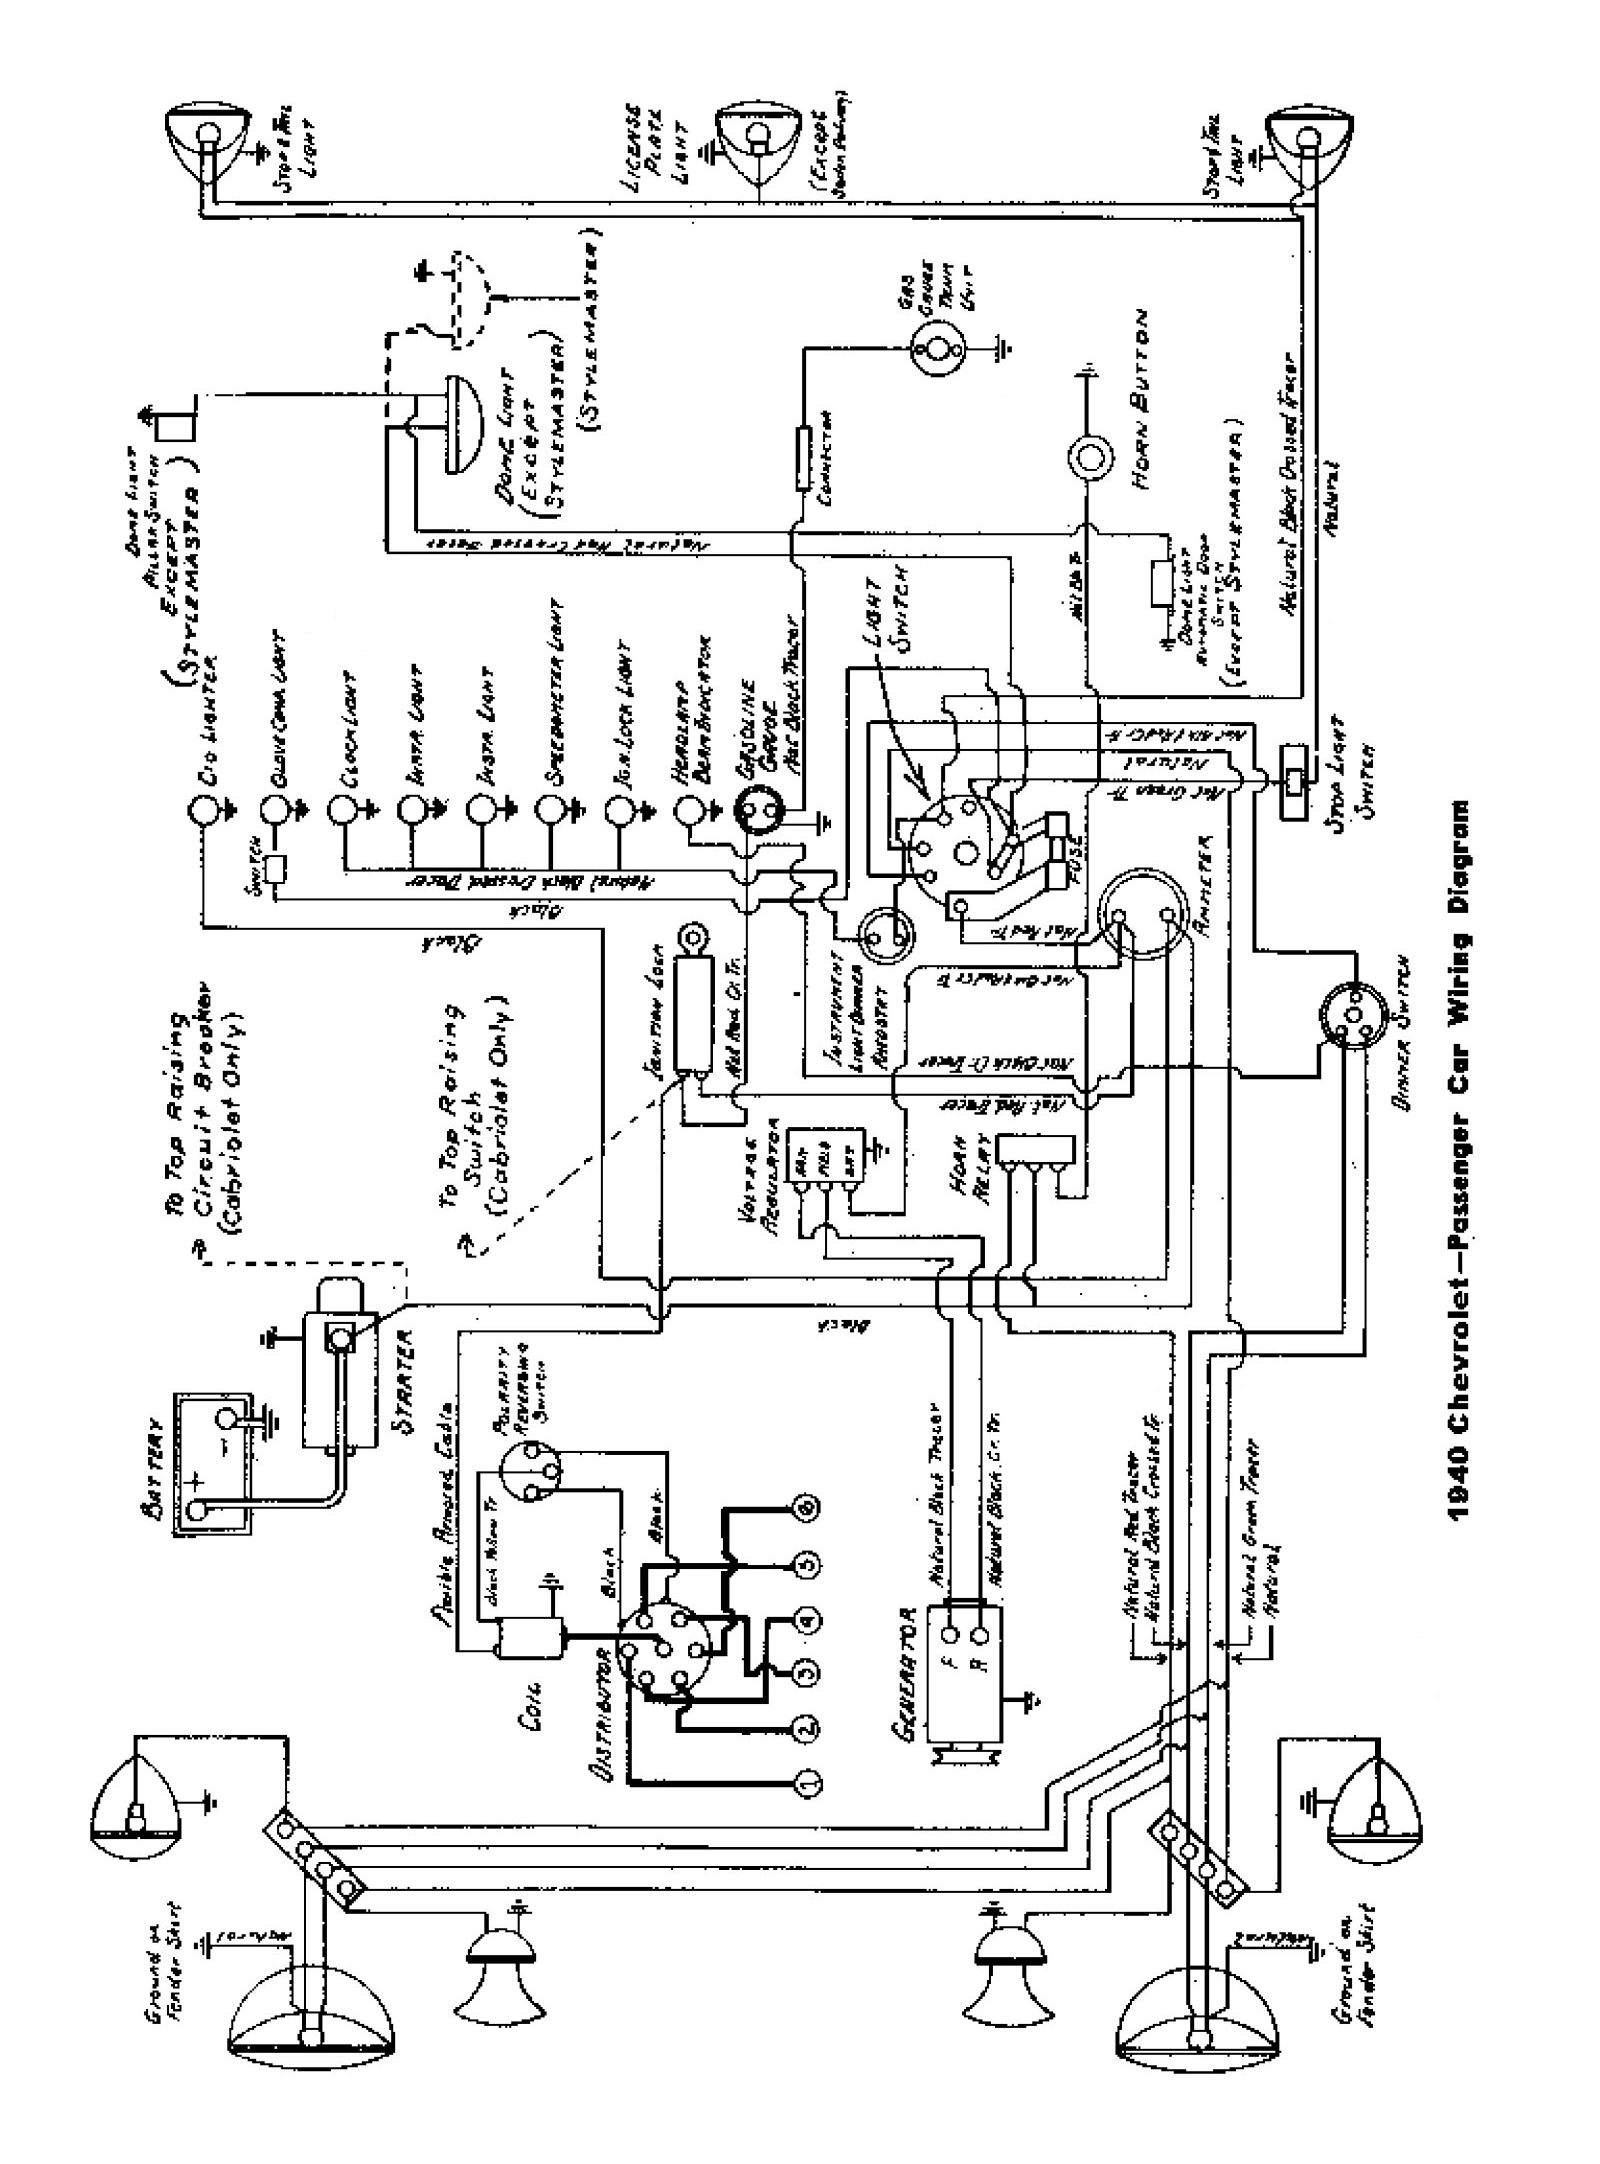 truck wiring diagram 1954 ford wiring diagram circuit wiring diagram rh 7 4 16 tokyo running sushi de